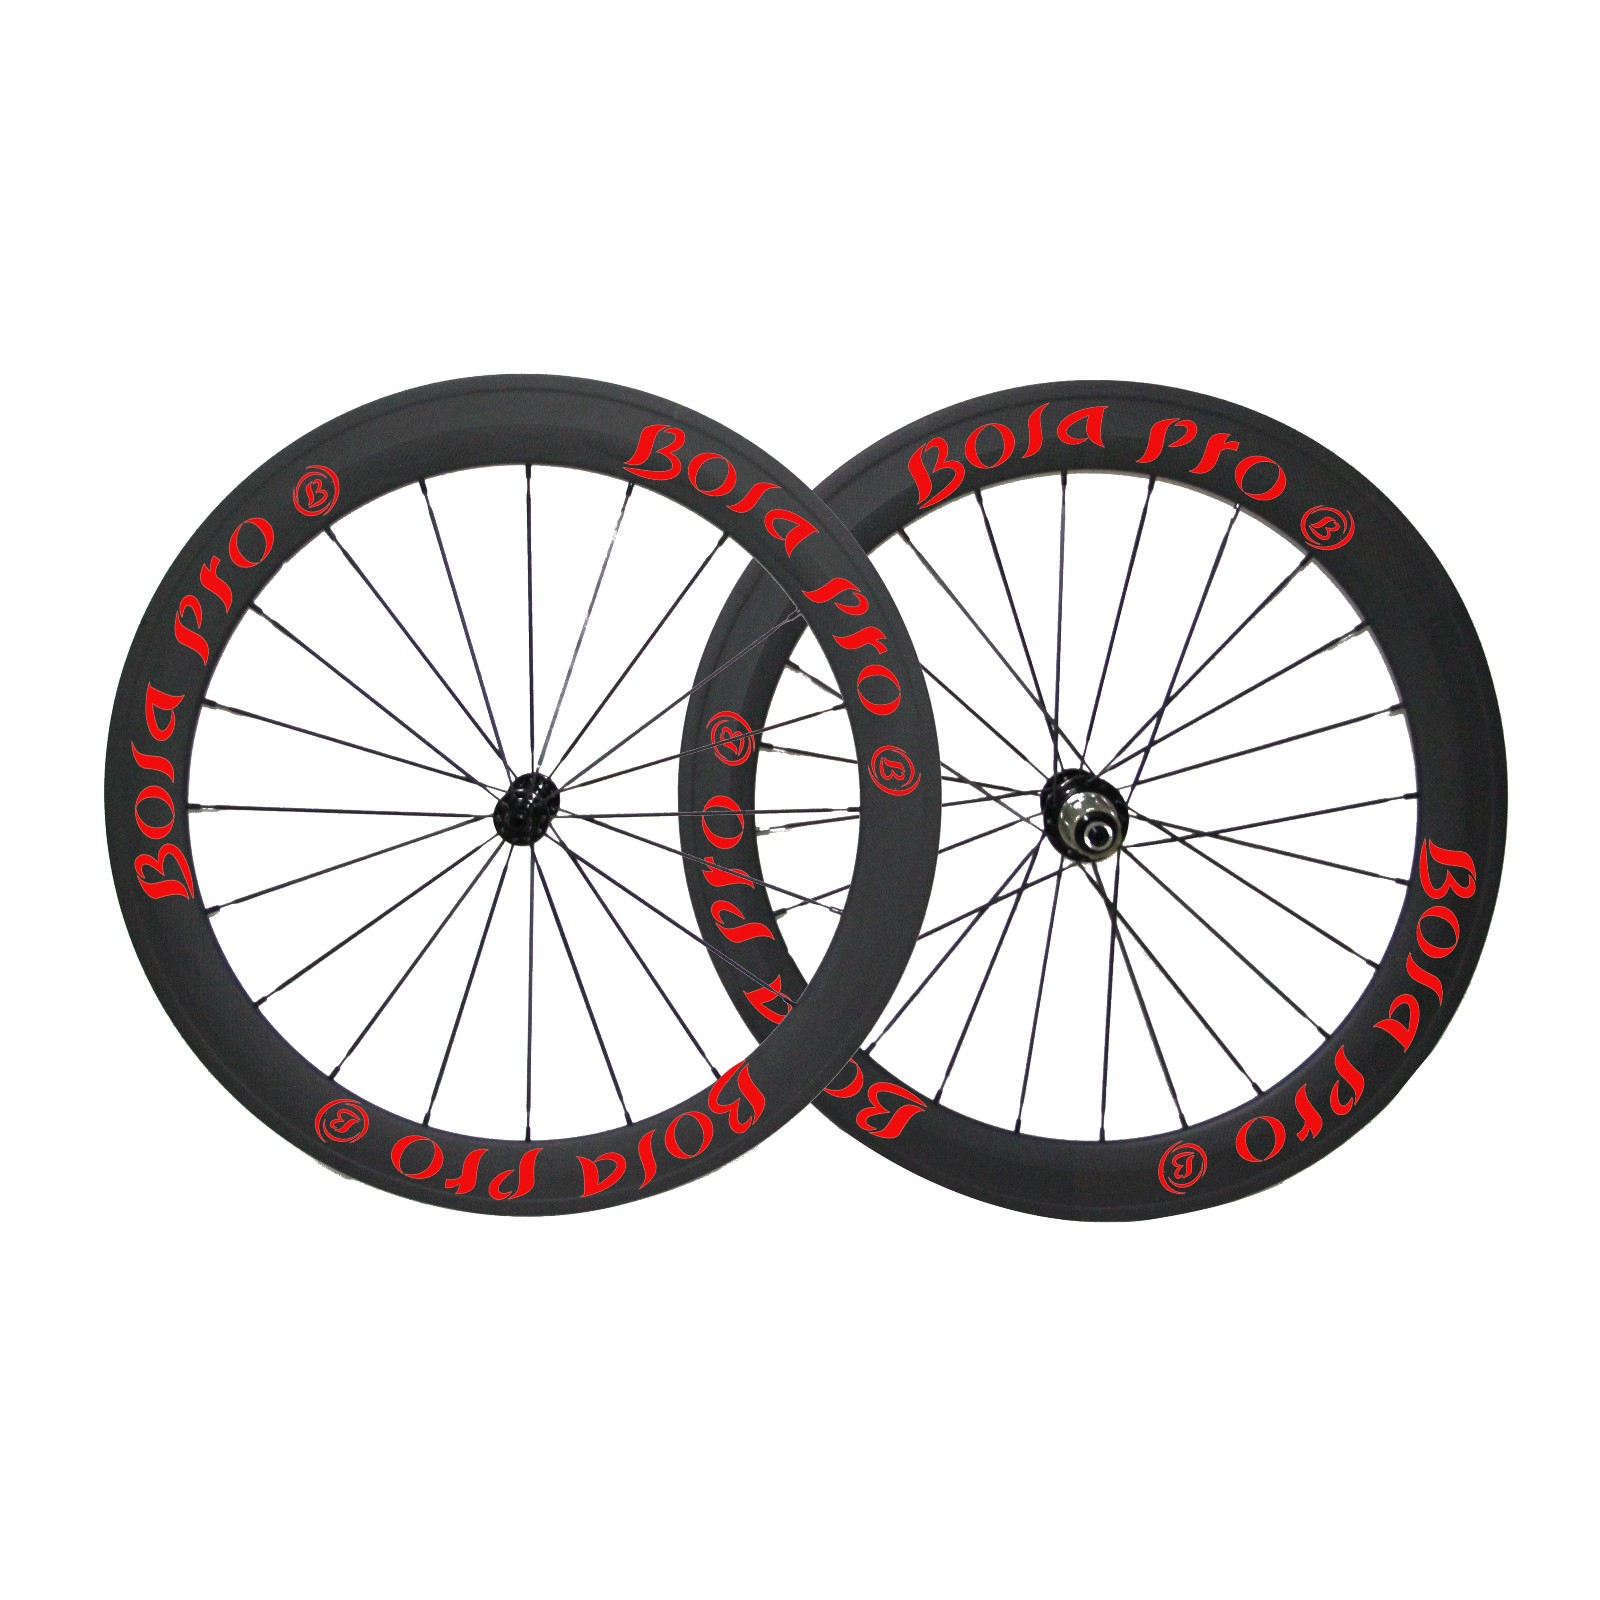 700C 50mm carbon wheelset with  Novatec A271/372